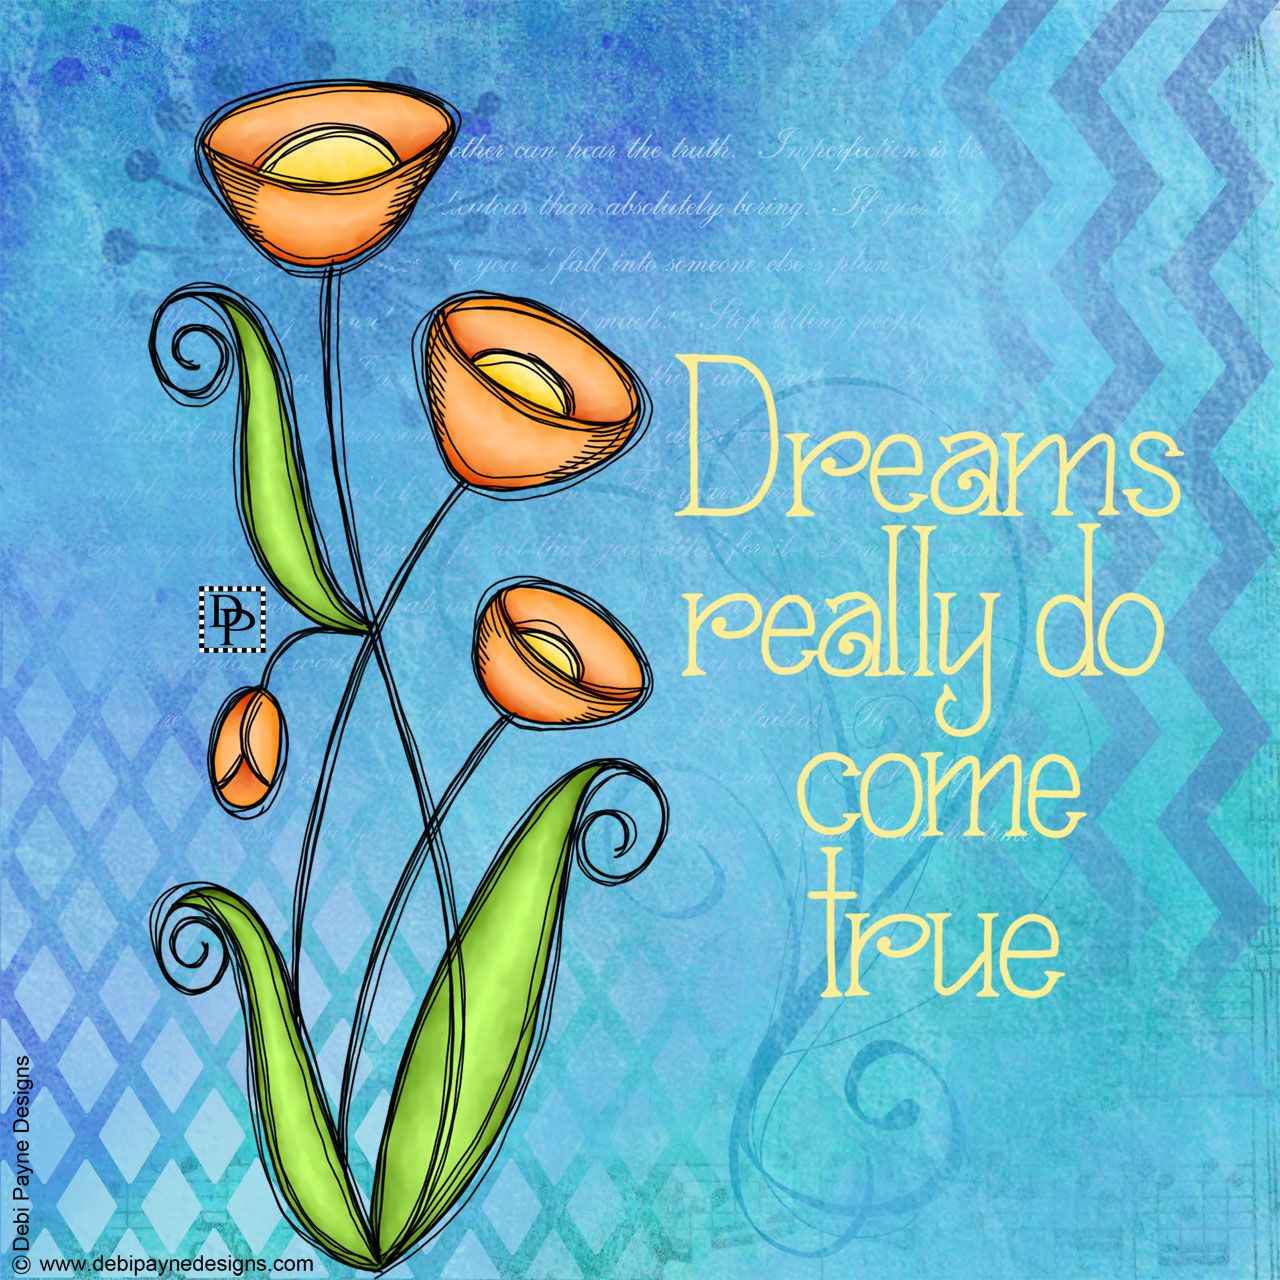 Doodle Flowers With Mixed Media Background Featuring The Hand Lettered Text Dreams Really Do Come True Flower Doodles Mixed Media Art Journaling Art Journal